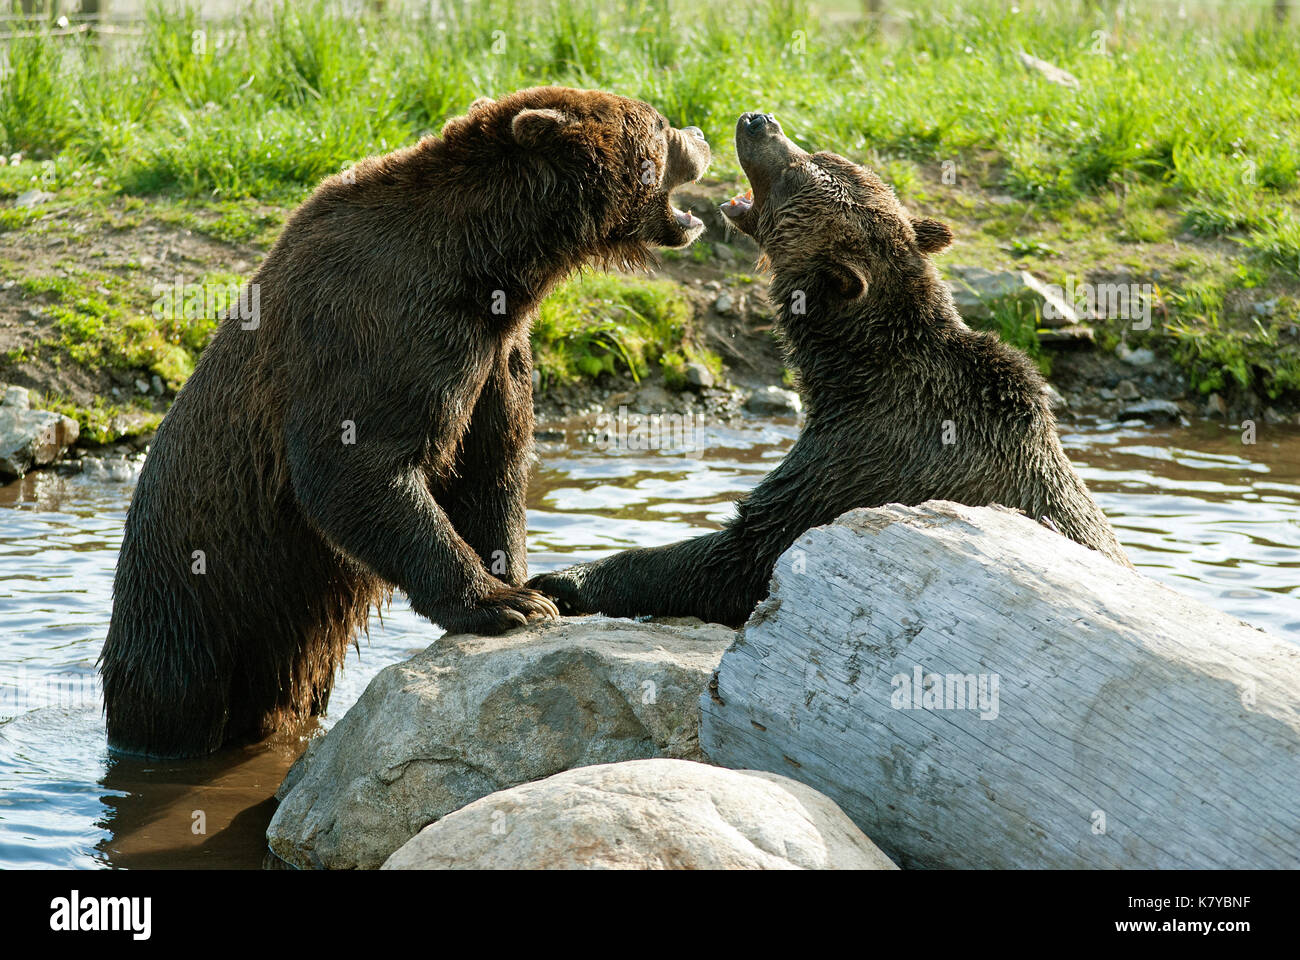 Grizzly bears (Ursus arctos horribilis) playing in wildlife refuge at Grouse Mountain, Vancouver, British Columbia, Canada - Stock Image